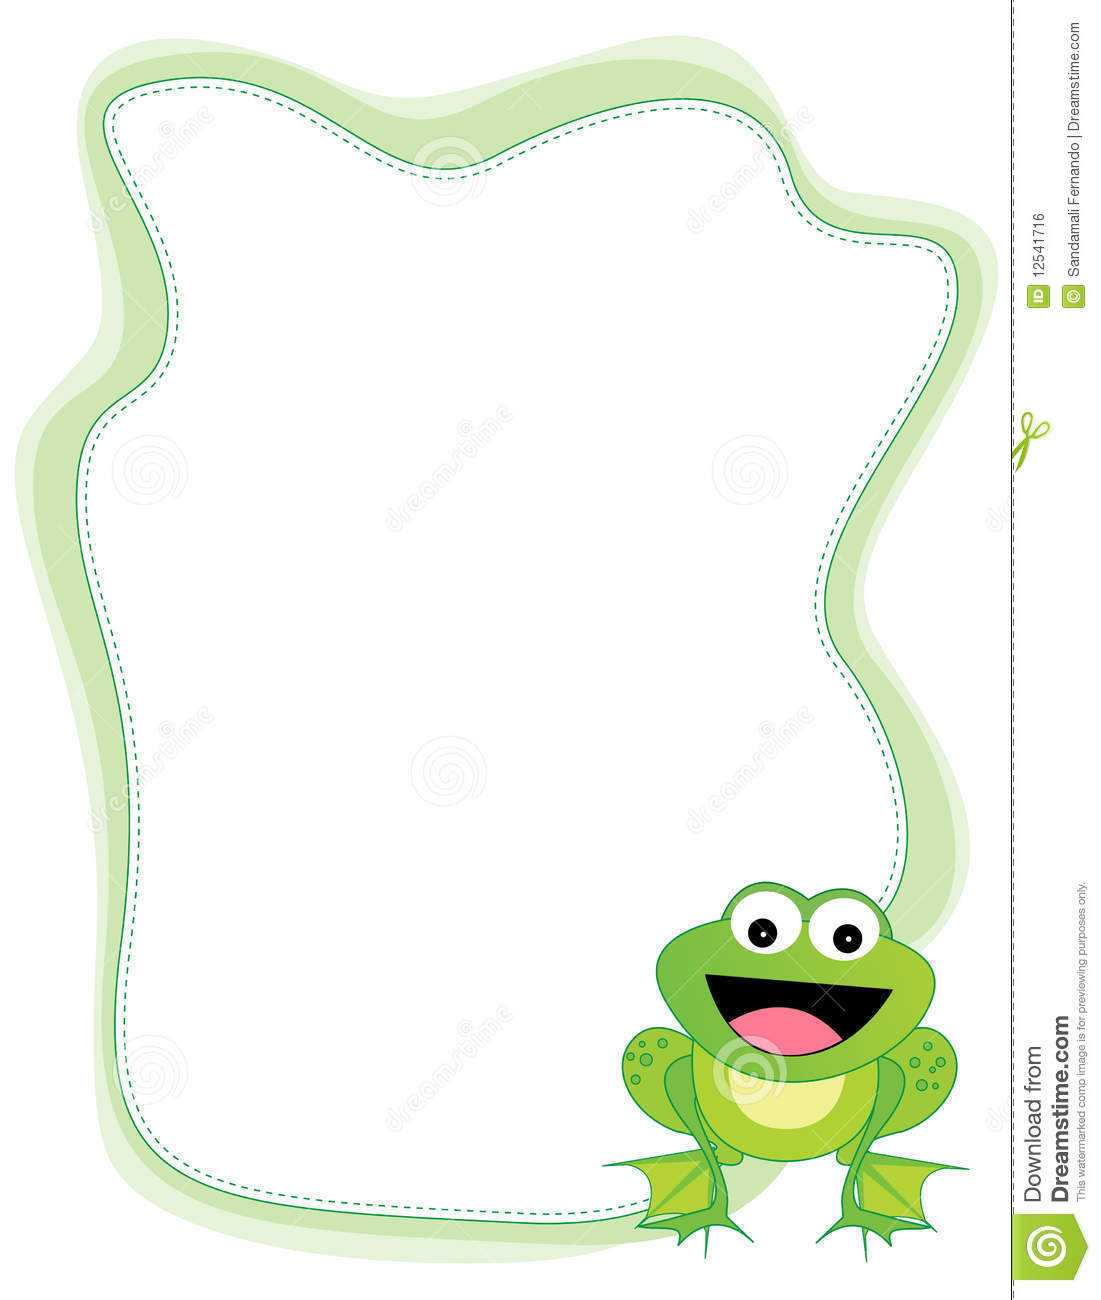 Frog Border Royalty Free Stock Image - Image: 12541716